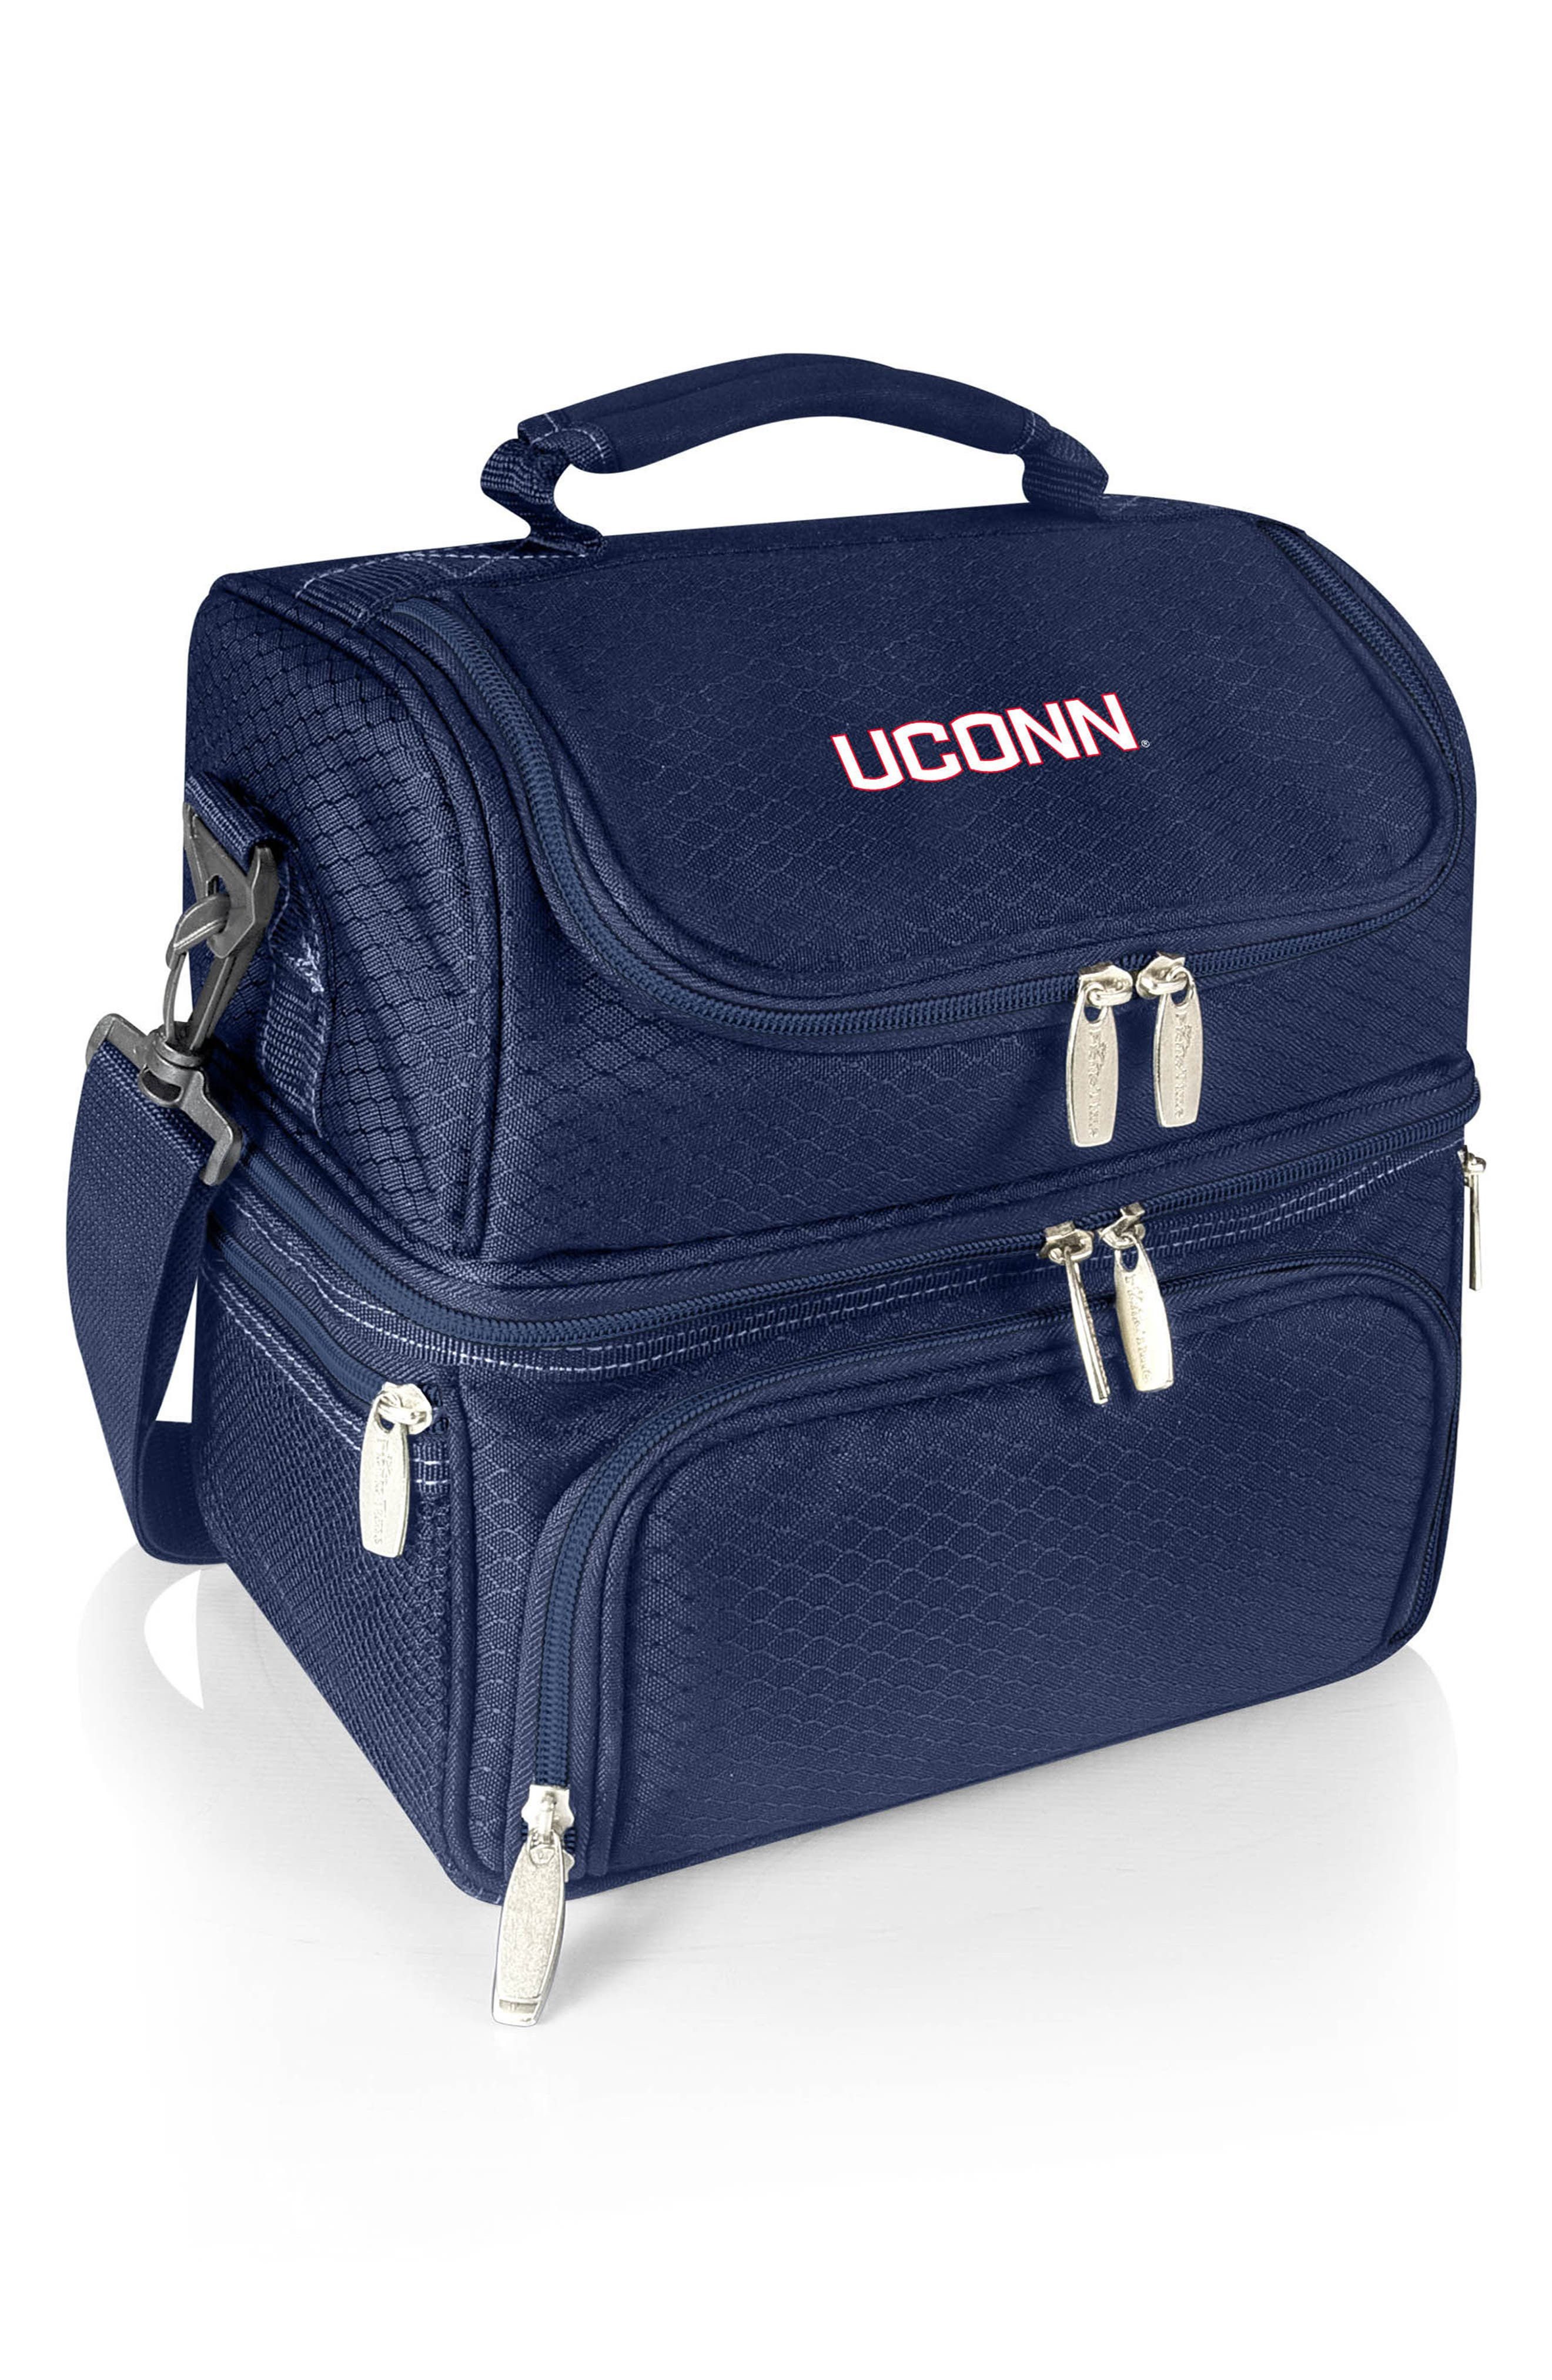 Navy Pranzo College Team Logo Lunch Tote,                         Main,                         color, Uconn Huskies